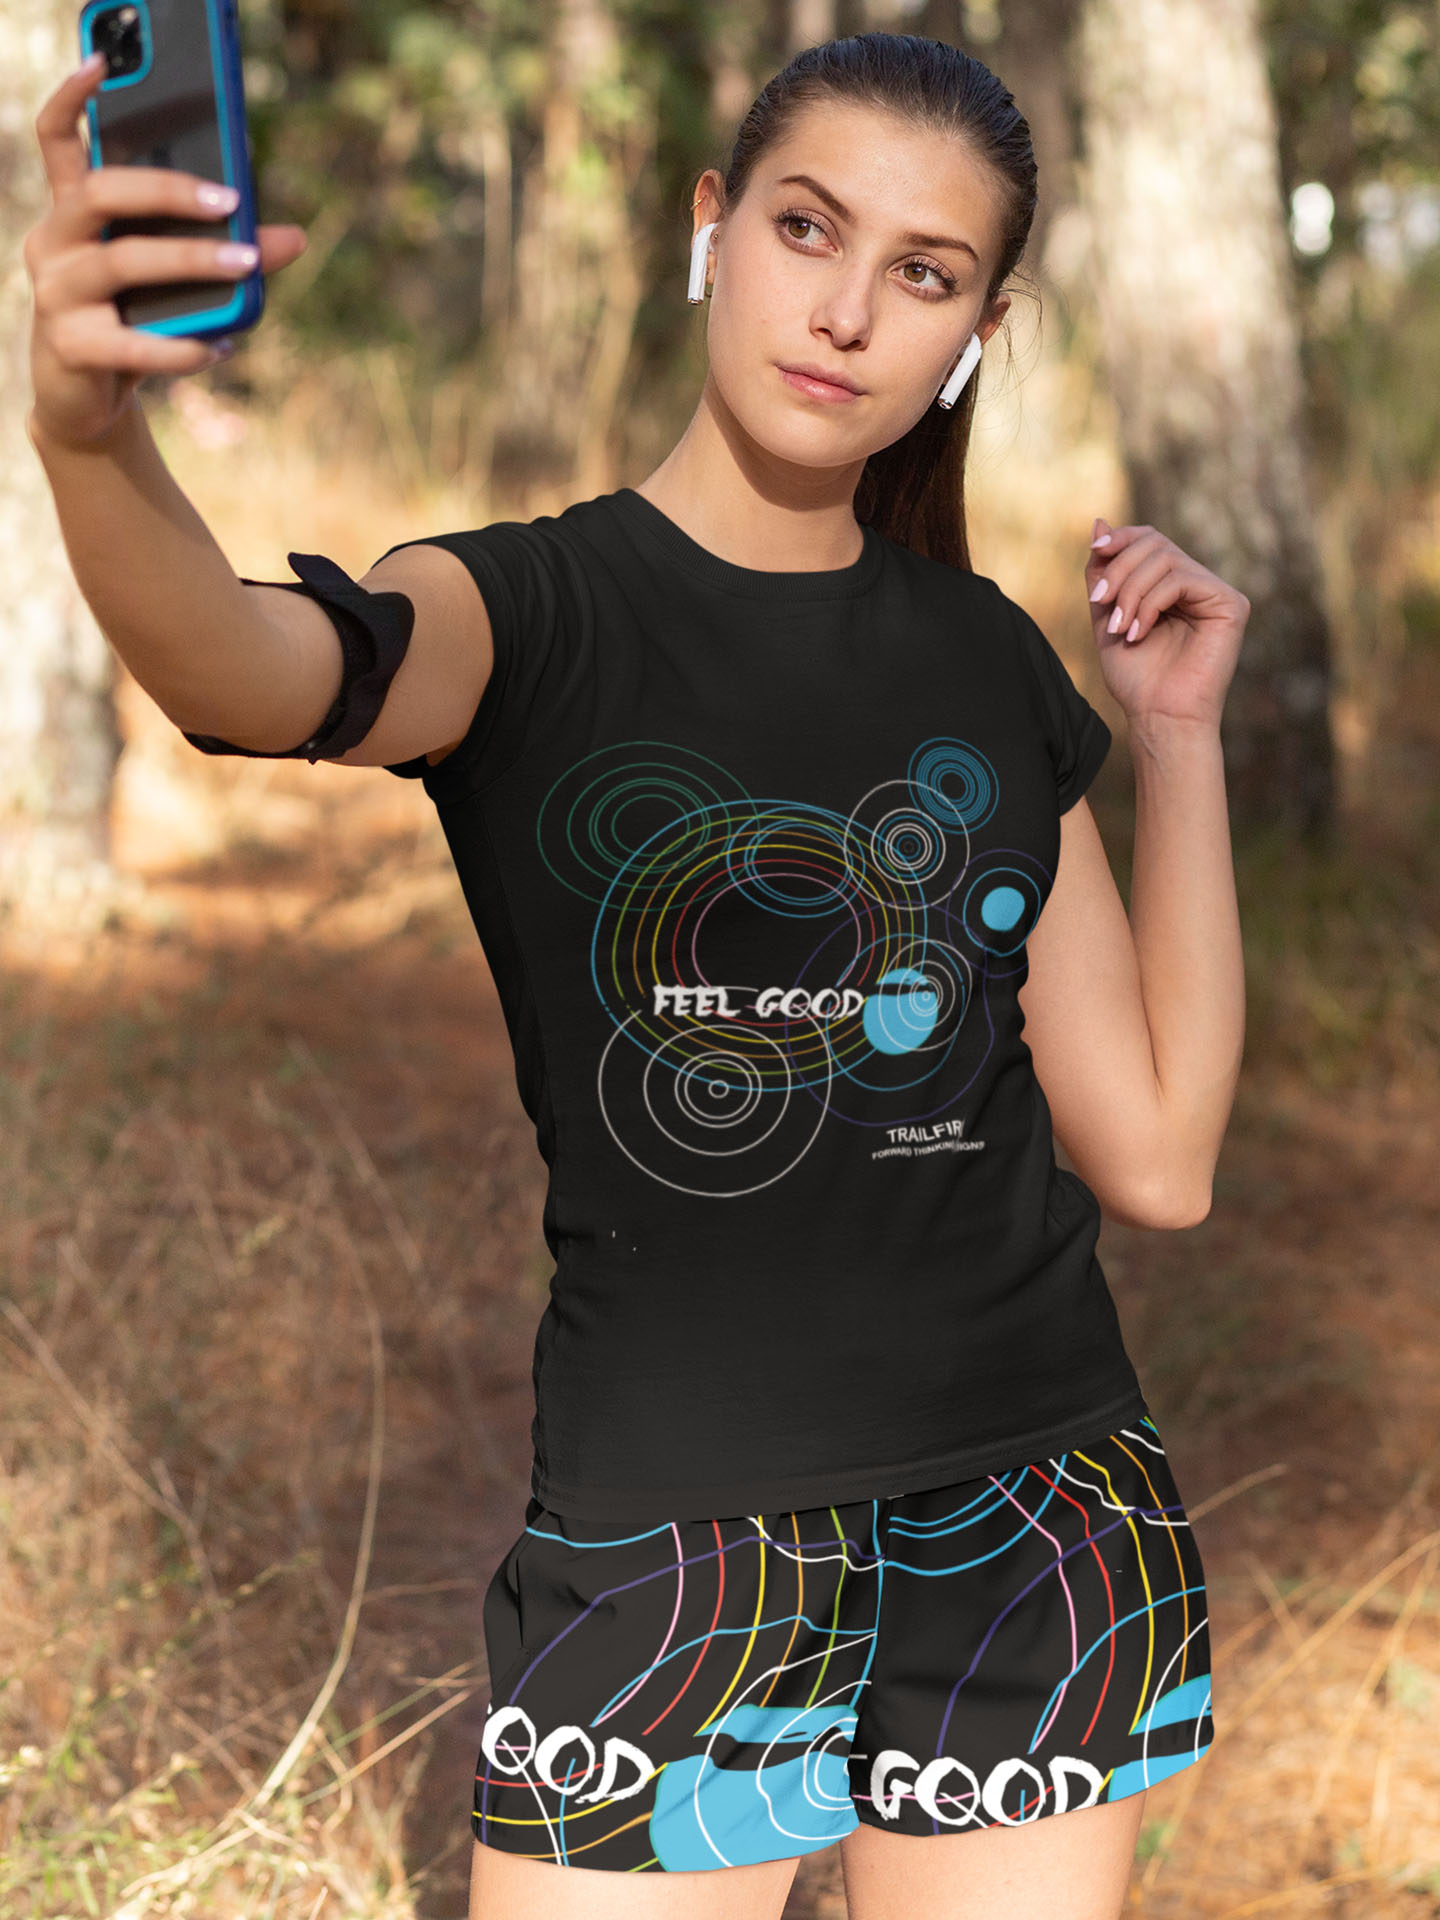 Spredshirt-Prints-Trailfire_0000_t-shirt-and-shorts-mockup-of-a-woman-taking-a-selfie-33080